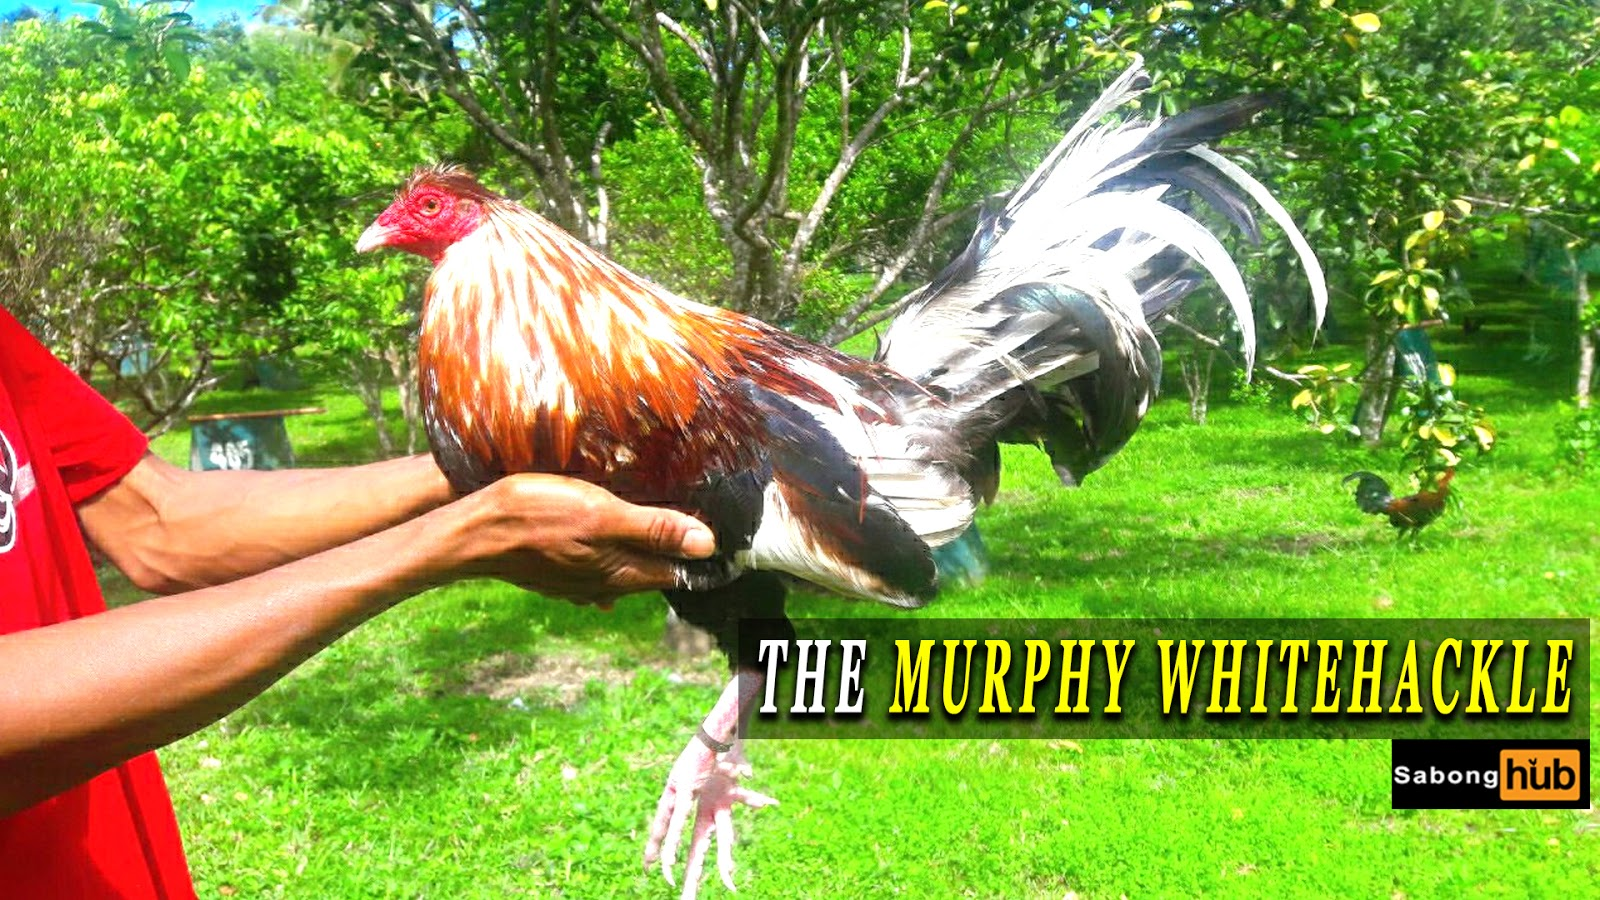 Murphy Whitehackle Bing Images - Newwallpaperjdi co